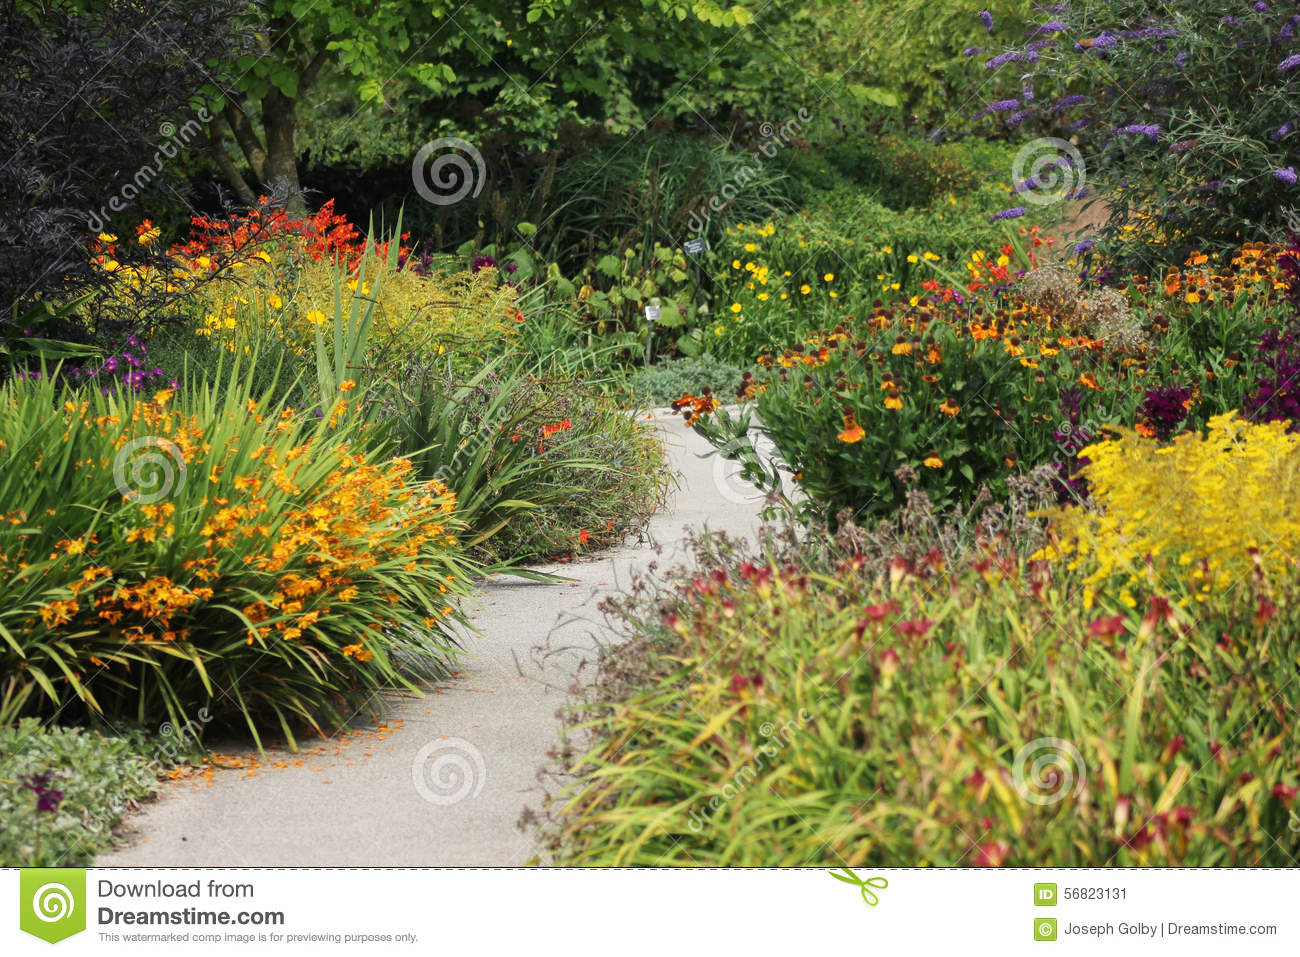 Flower Garden Path flower garden with path stock photo - image: 56823131